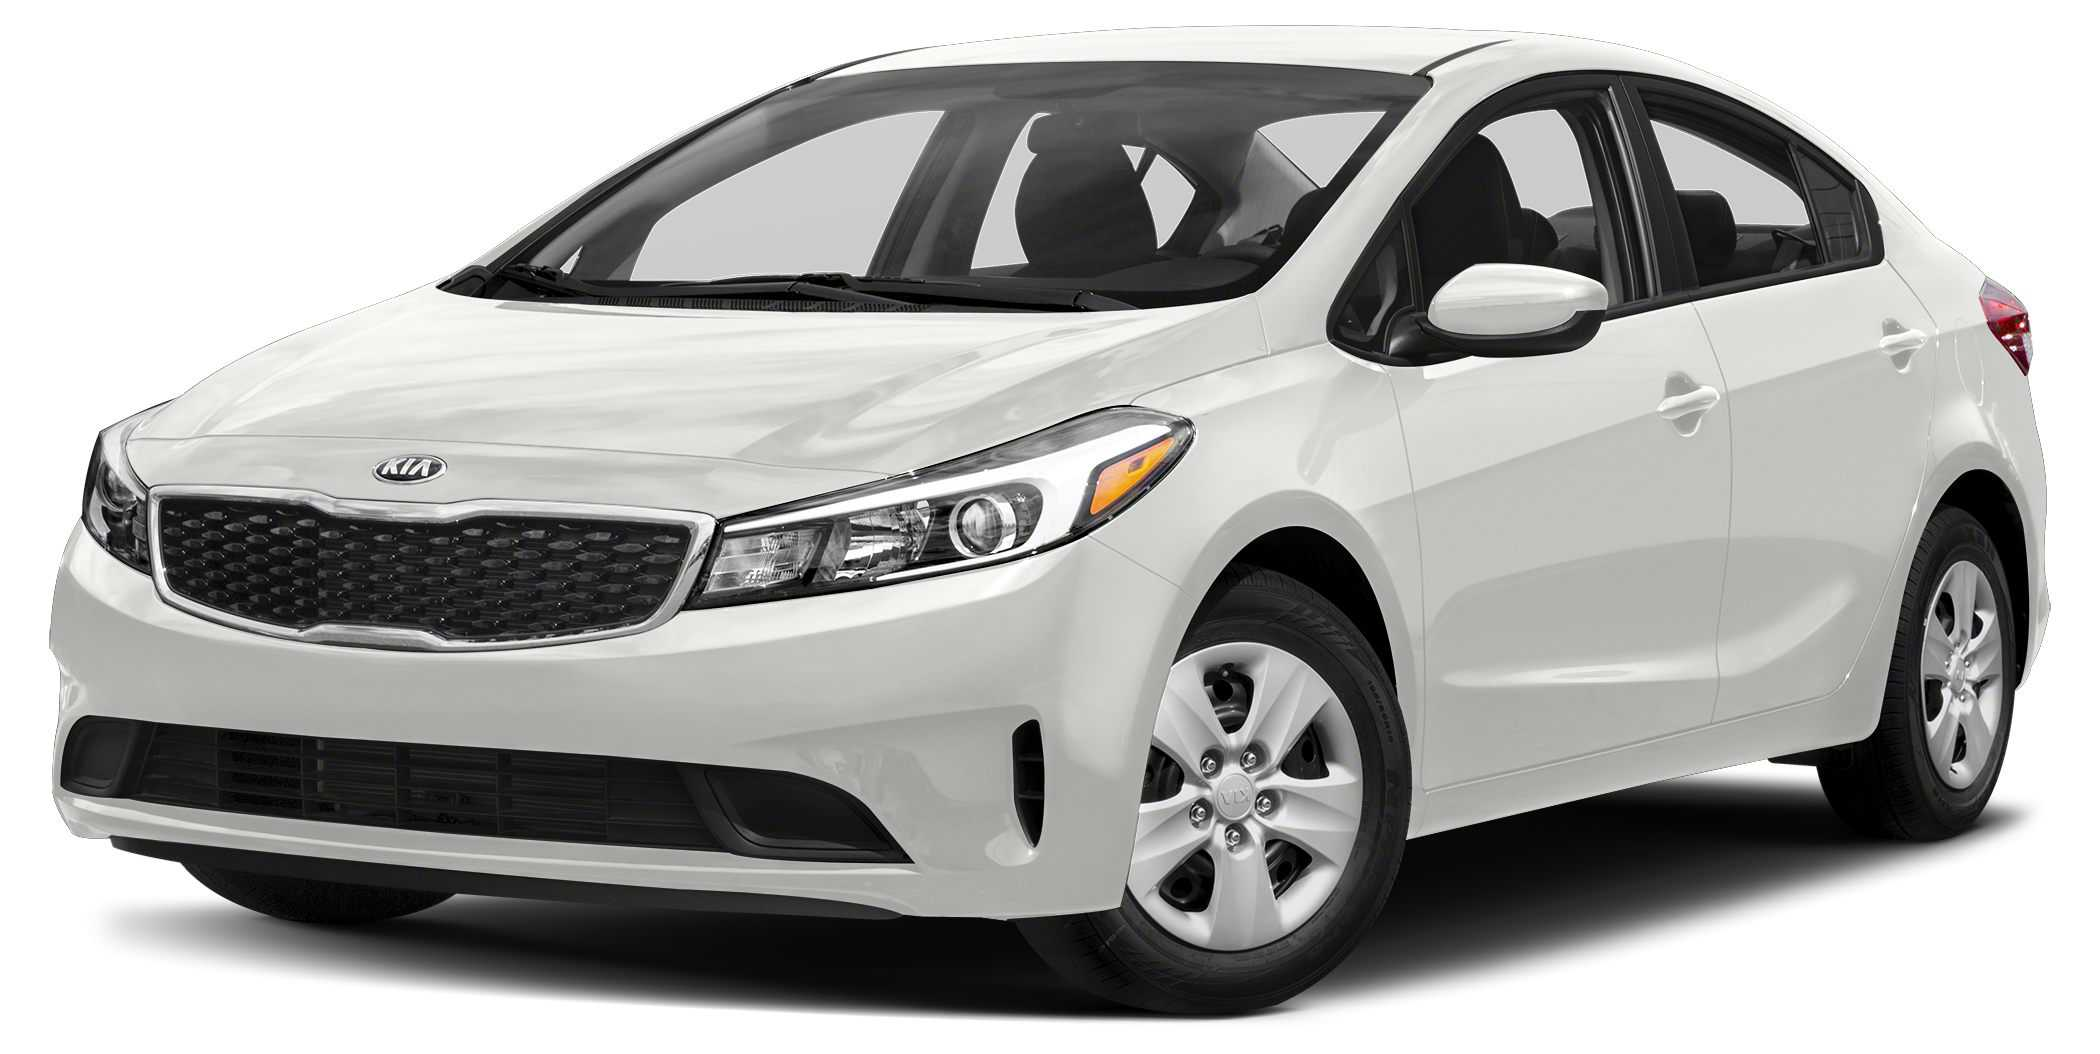 2017 kia forte for sale in puyallup wa 3kpfk4a73he043645. Black Bedroom Furniture Sets. Home Design Ideas